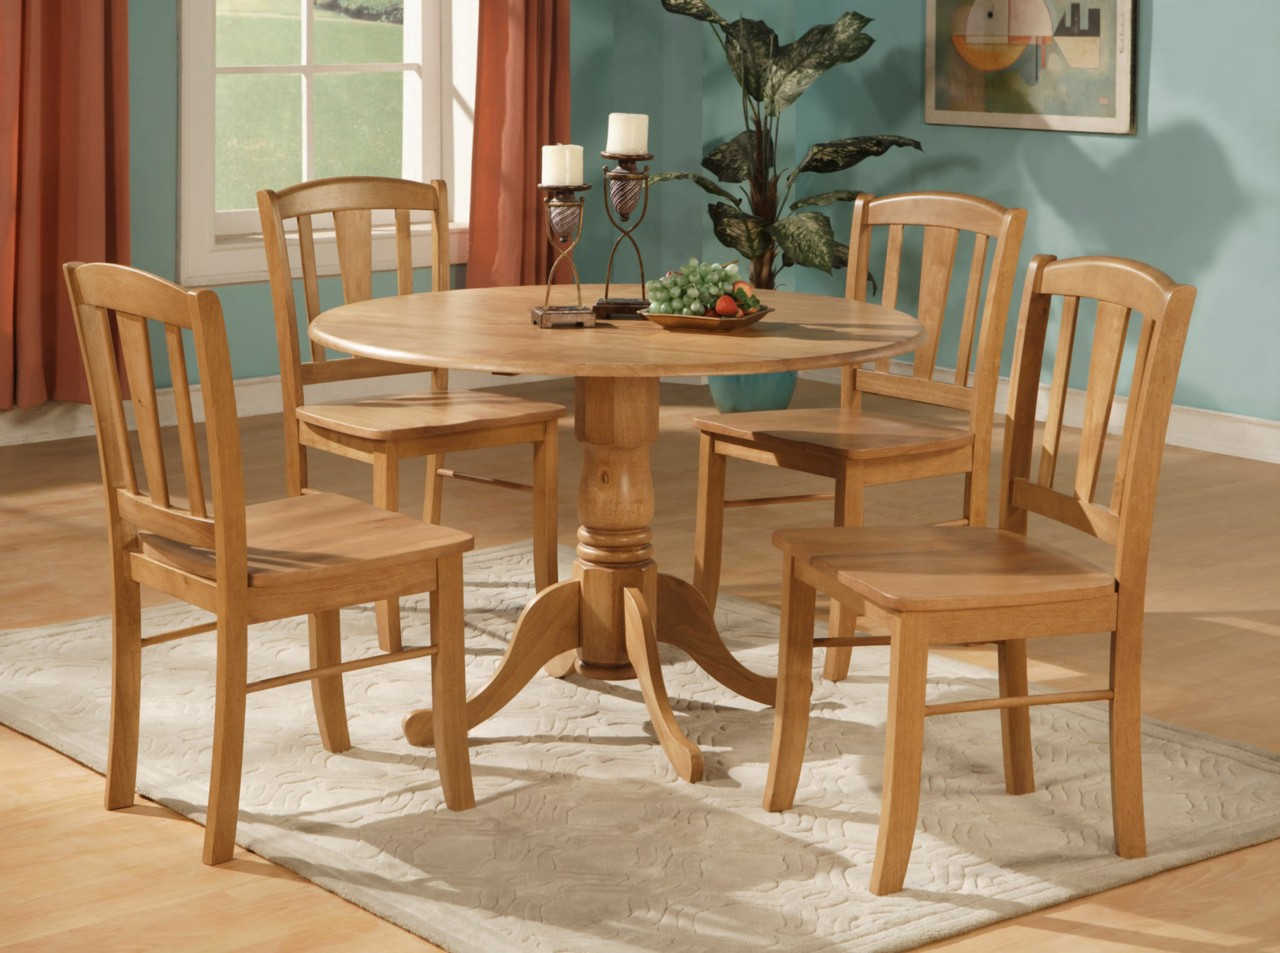 cheap dining room table and chair sets | 5PC ROUND DINETTE KITCHEN DINING SET TABLE AND 4 CHAIRS | eBay